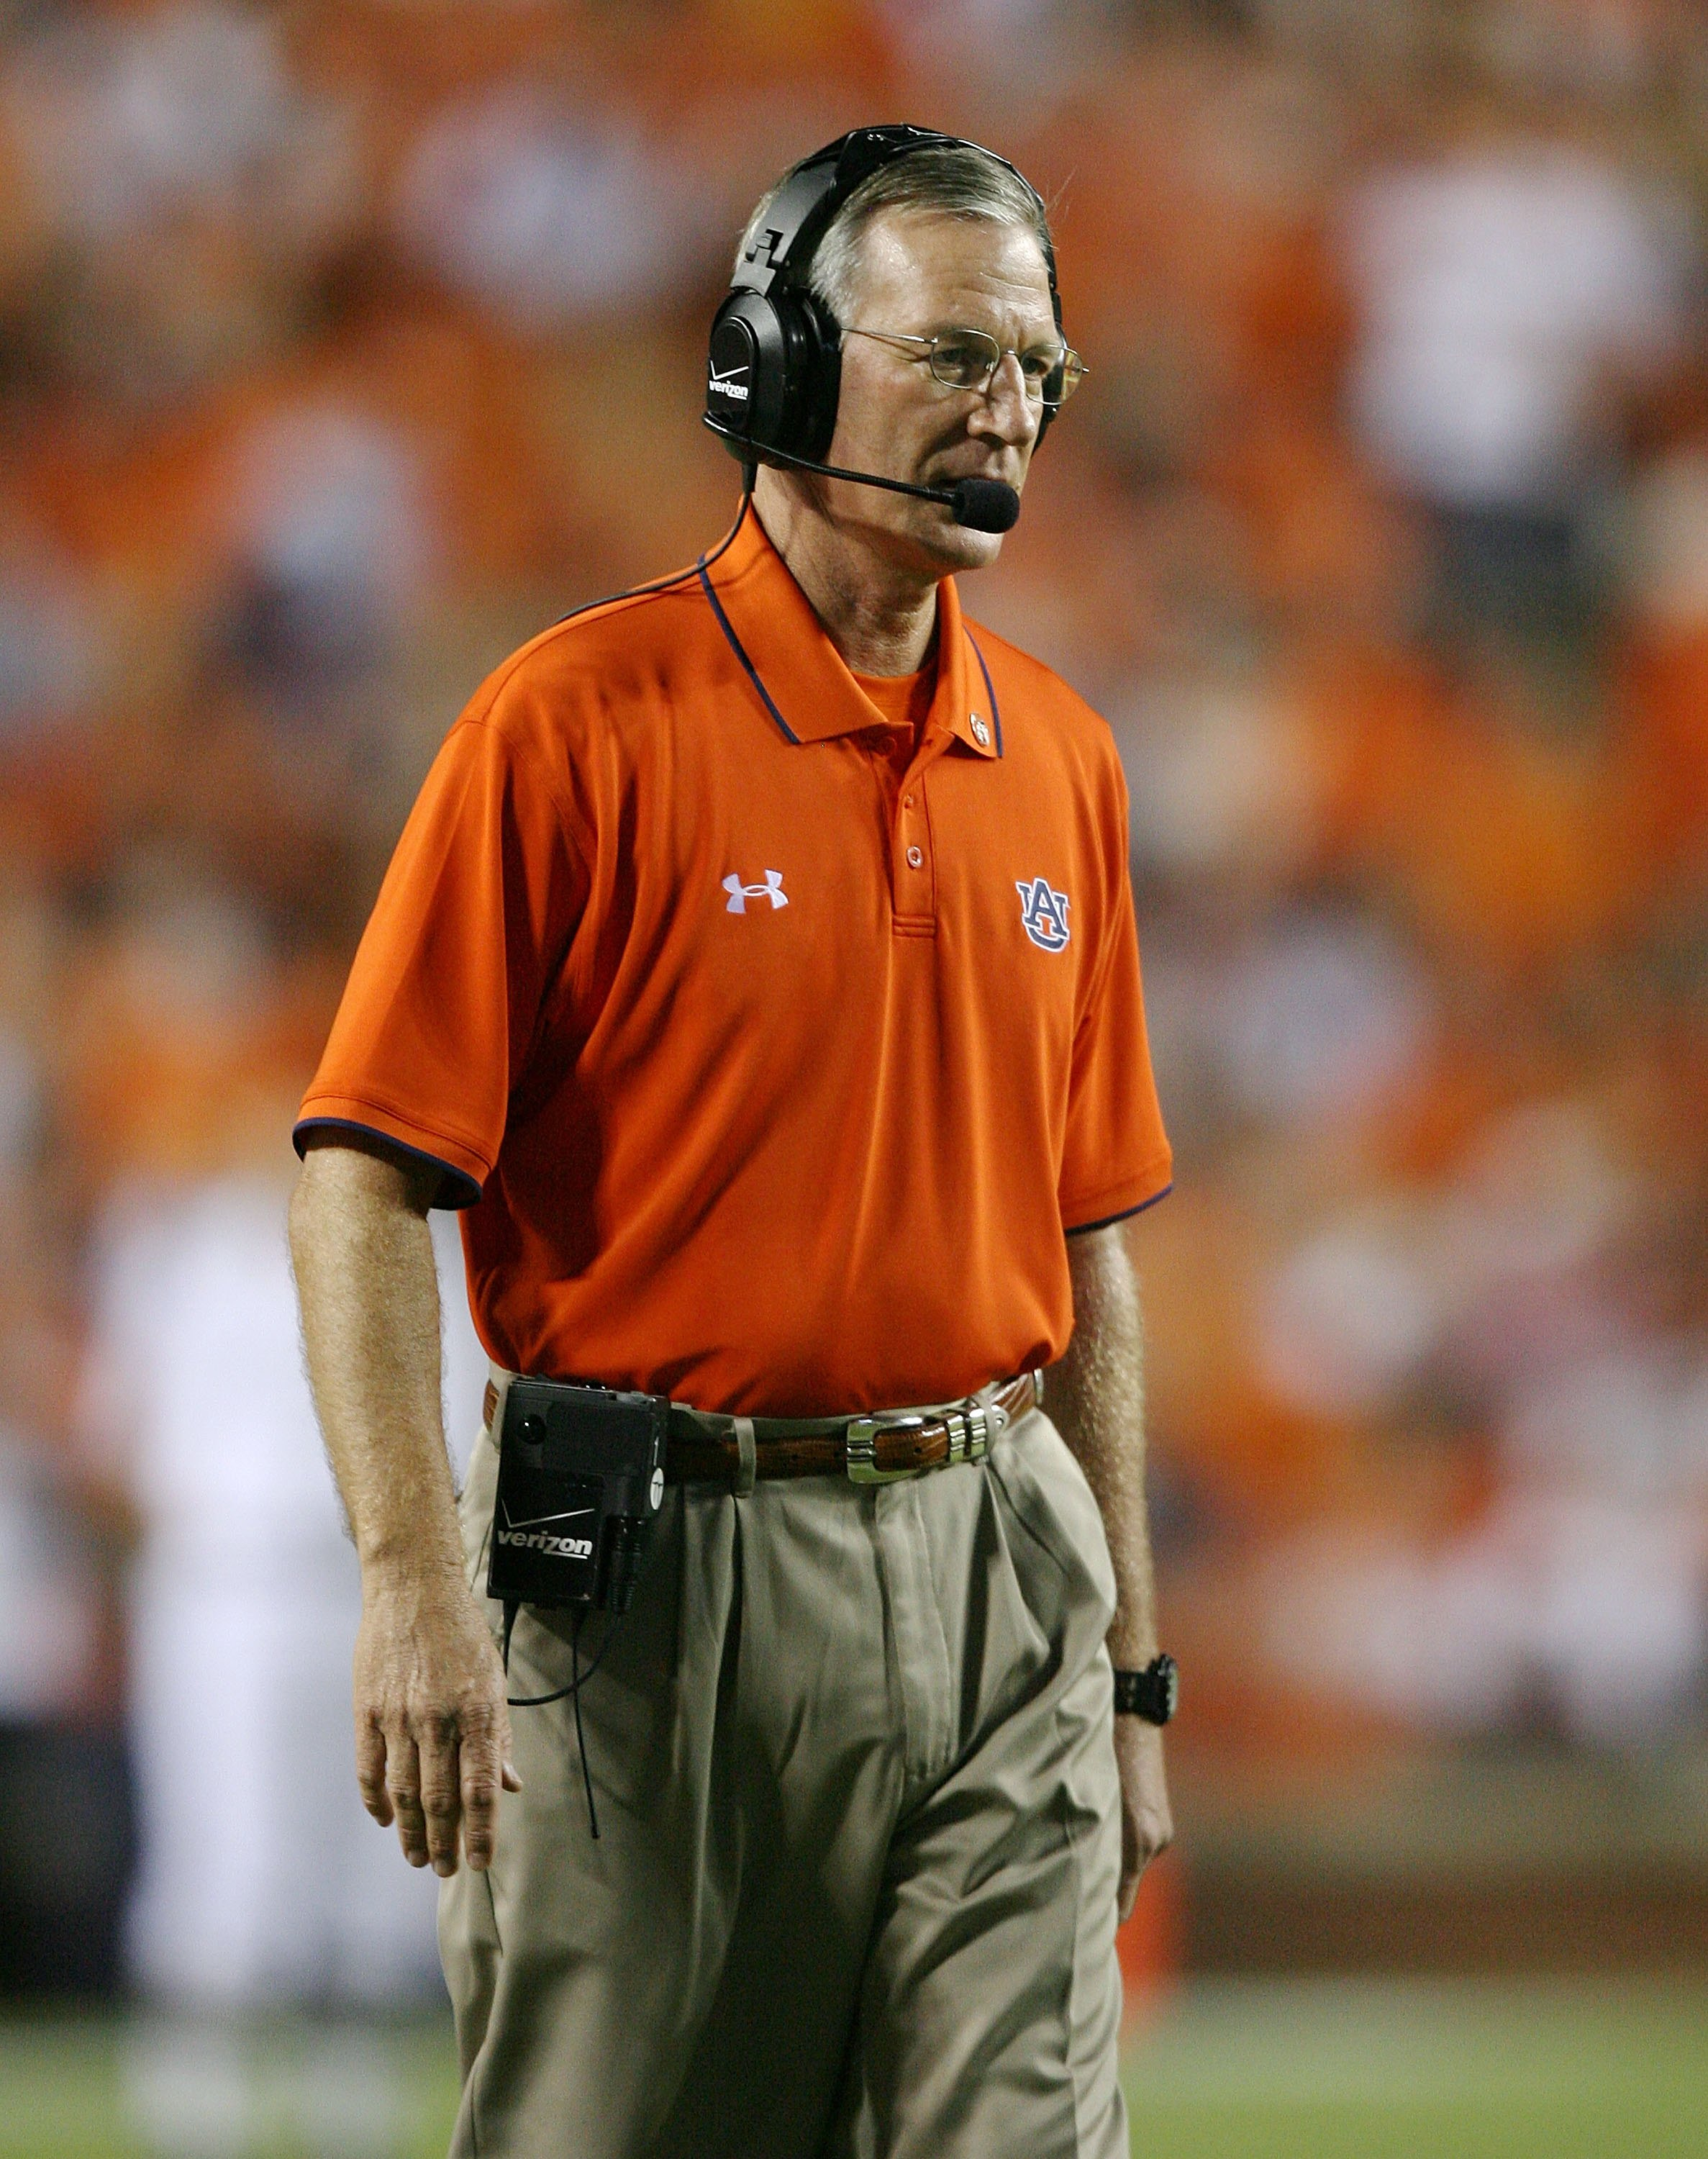 AUBURN, AL - SEPTEMBER 20:  Head coach Tommy Tuberville of the Auburn Tigers watches his team take on the LSU Tigers at Jordan-Hare Stadium on September 20, 2008 in Auburn, Alabama. LSU defeated Auburn 26-21.  (Photo by Doug Benc/Getty Images)